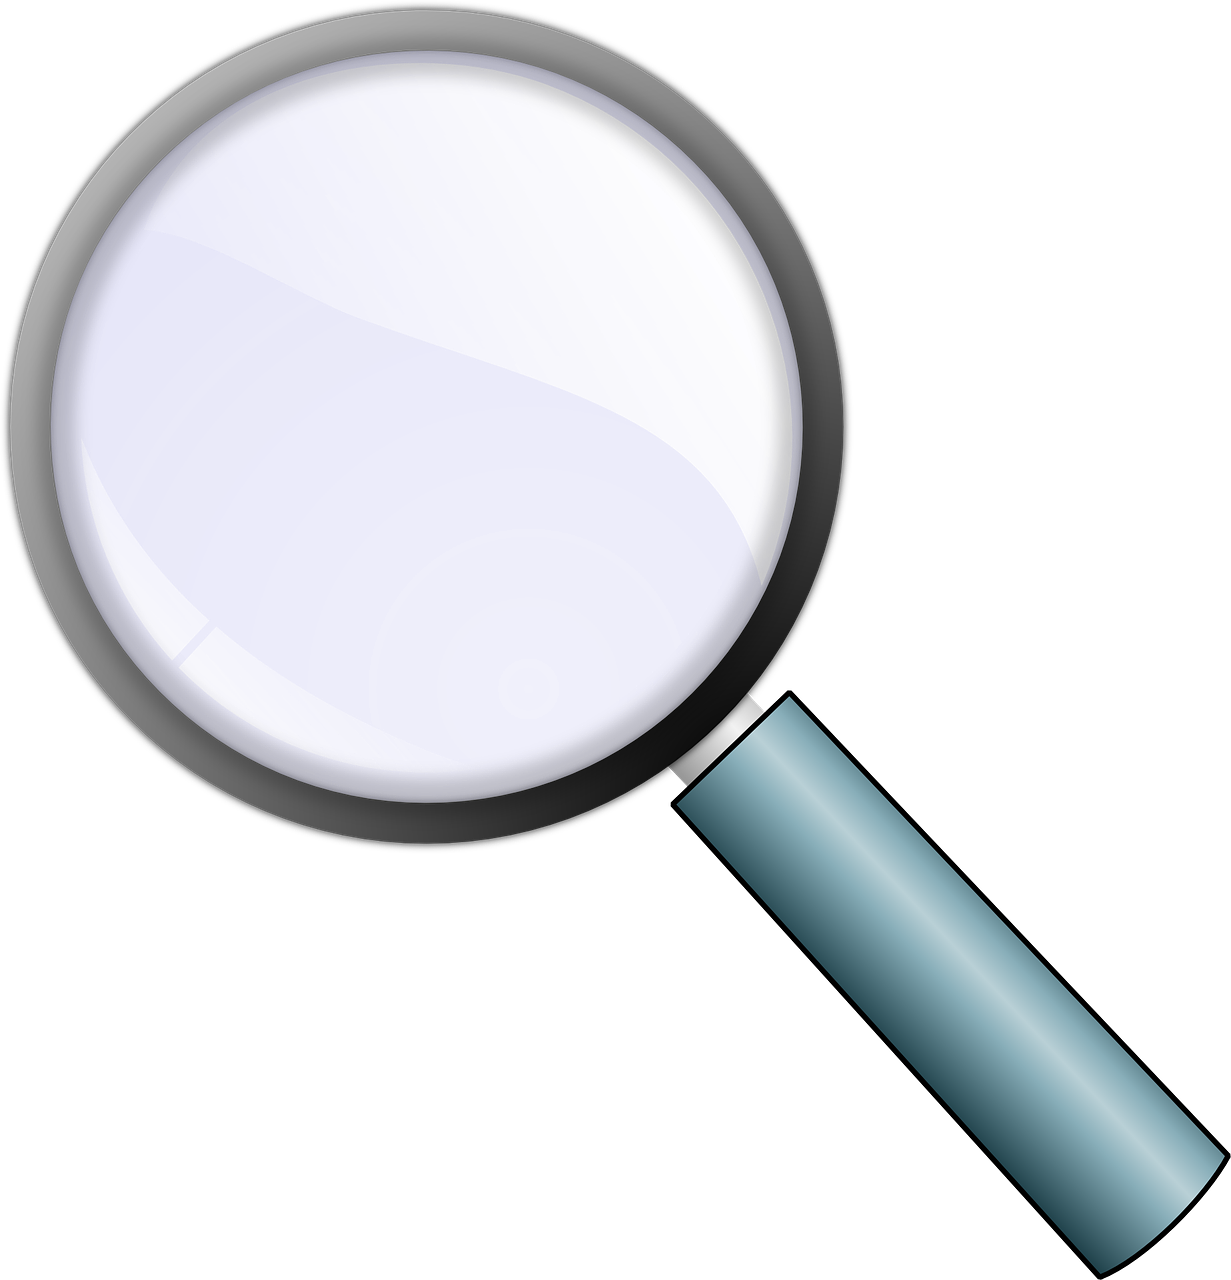 Glass Magnifying Zoom Lens PNG.